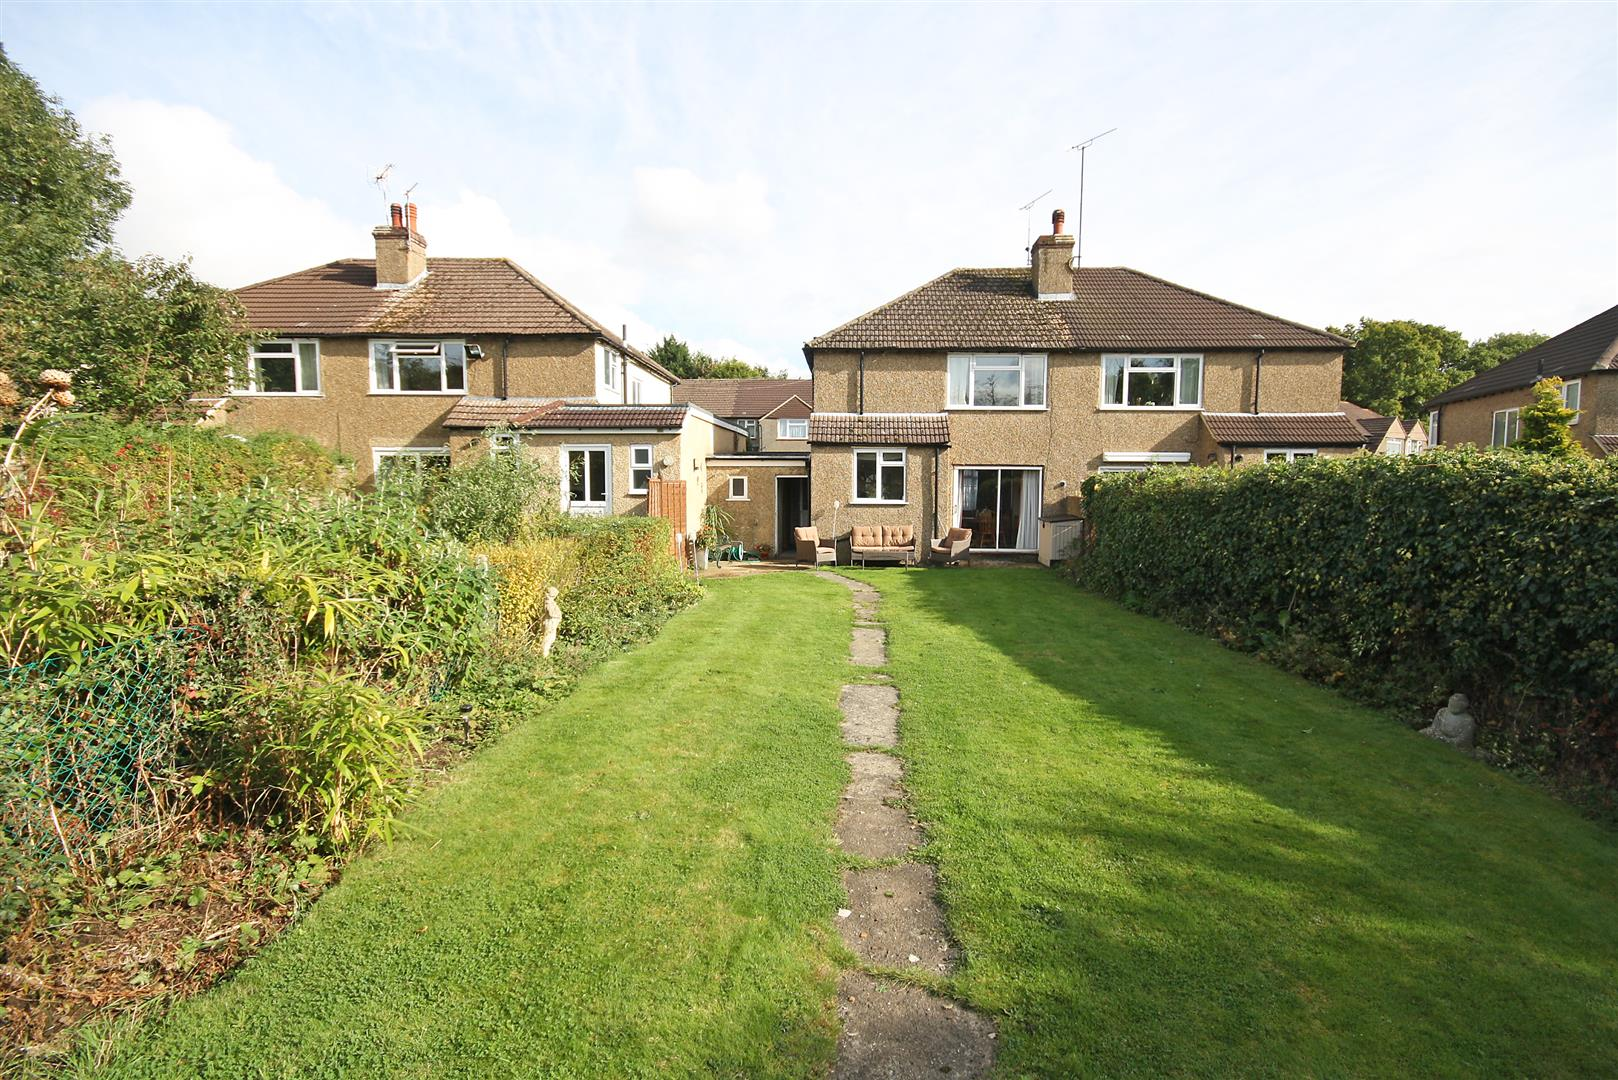 3 Bedrooms Property for sale in Willow Road, Redhill